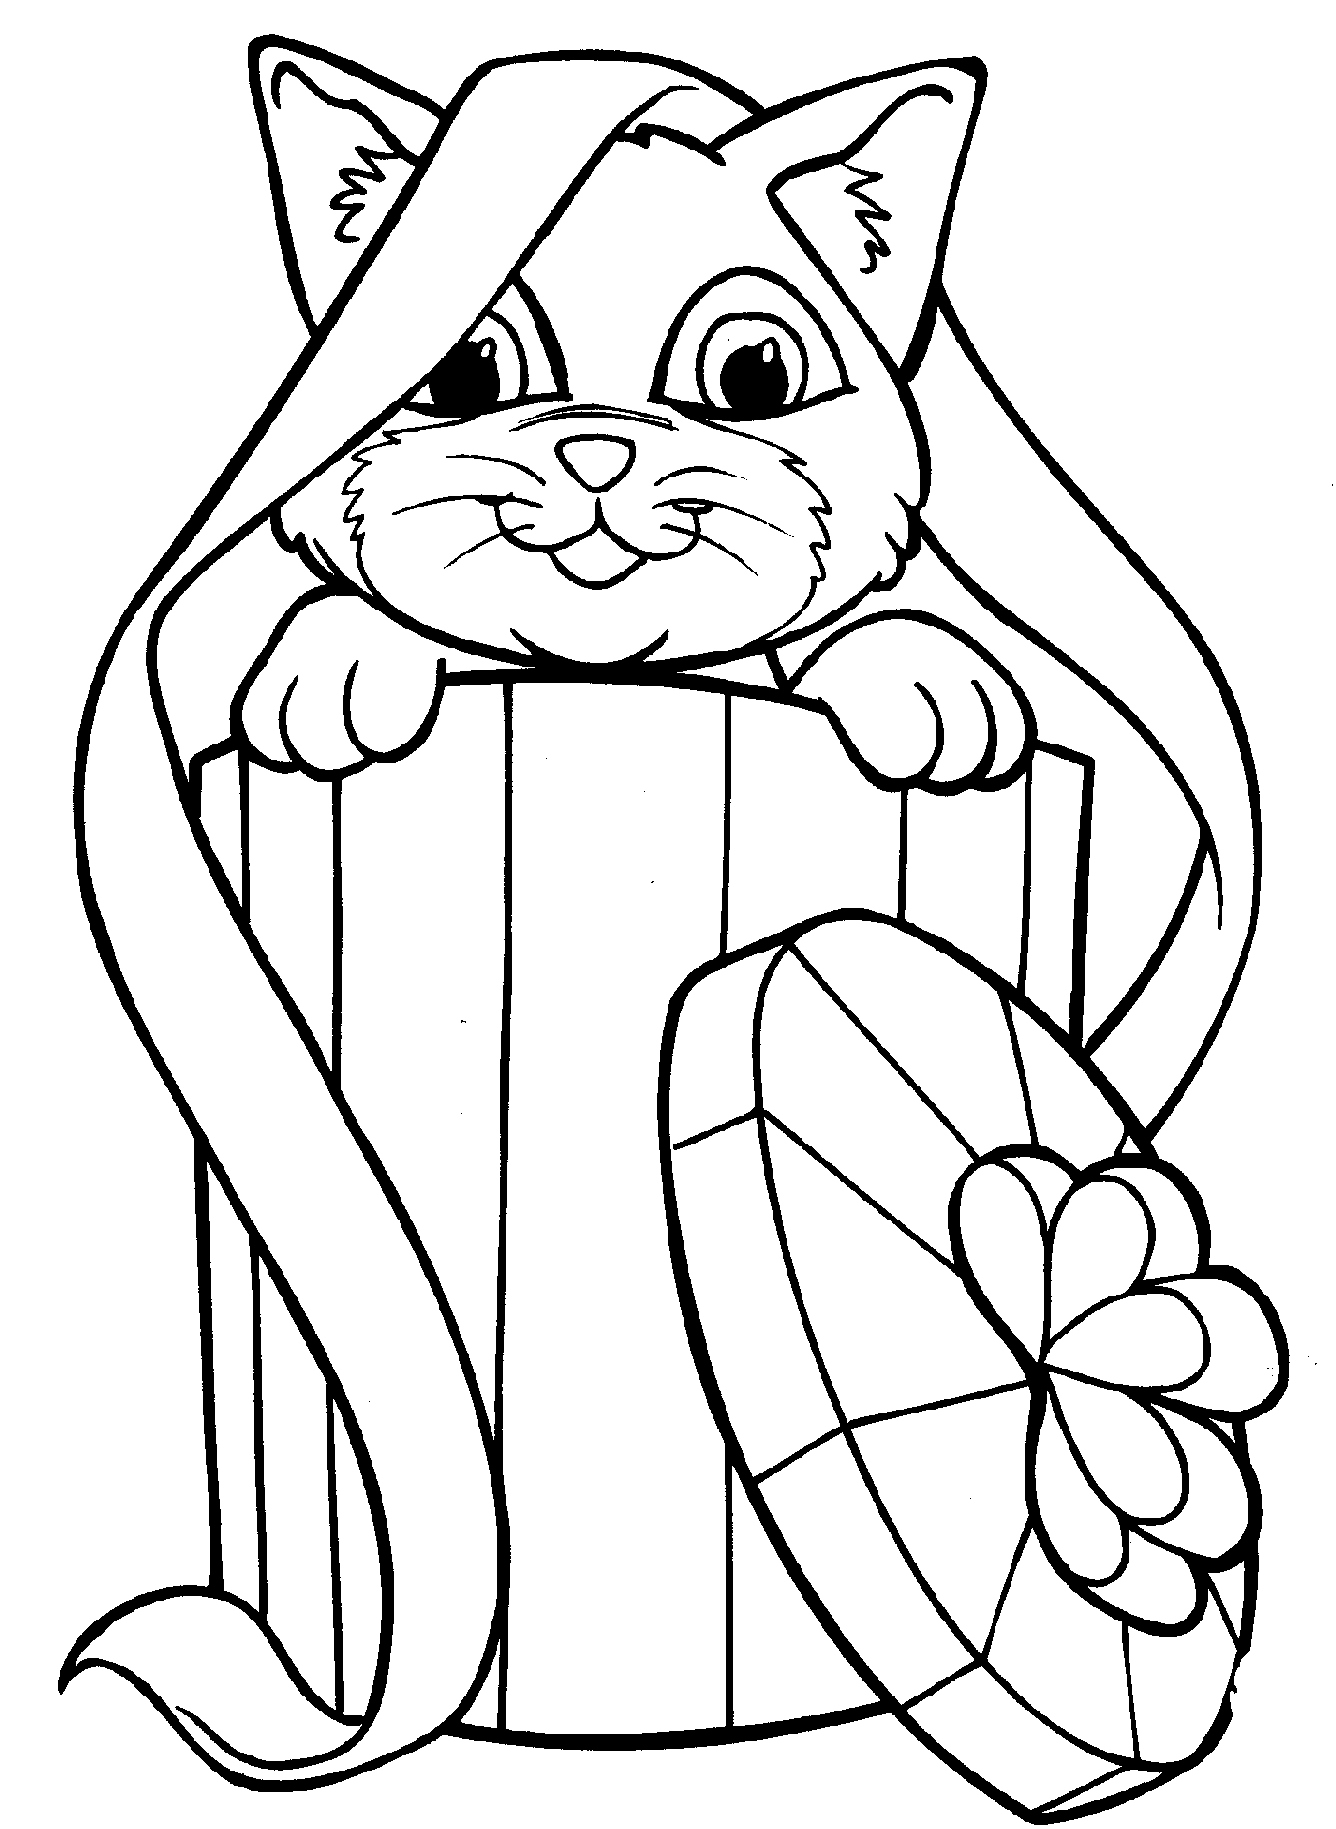 1336x1829 Cat Coloring Page Luxury Free Printable Kitten Coloring Pages